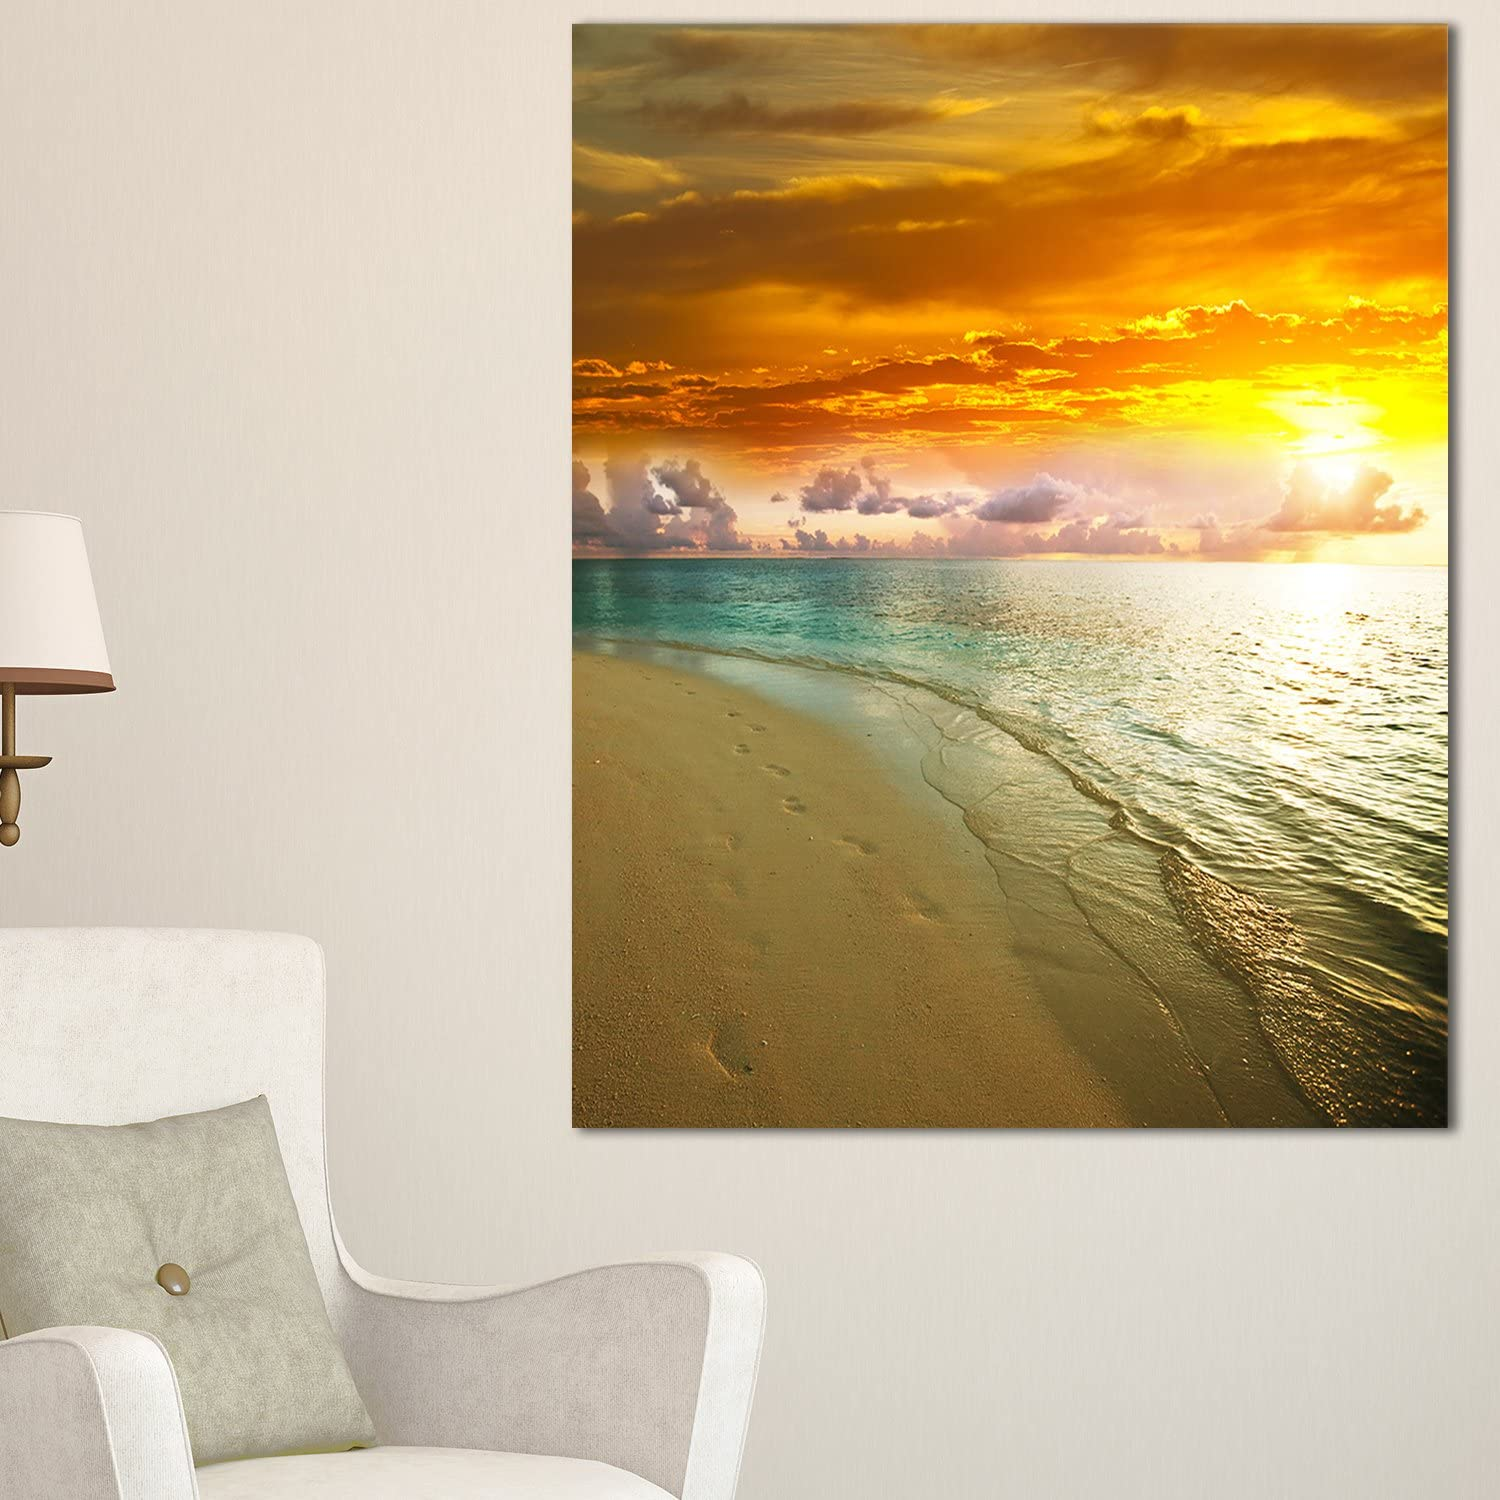 Design Art PT10516-30-40 Amazingly colorful Beach with Footprints-Seashore Canvas Wall Art-30X40, 30x40